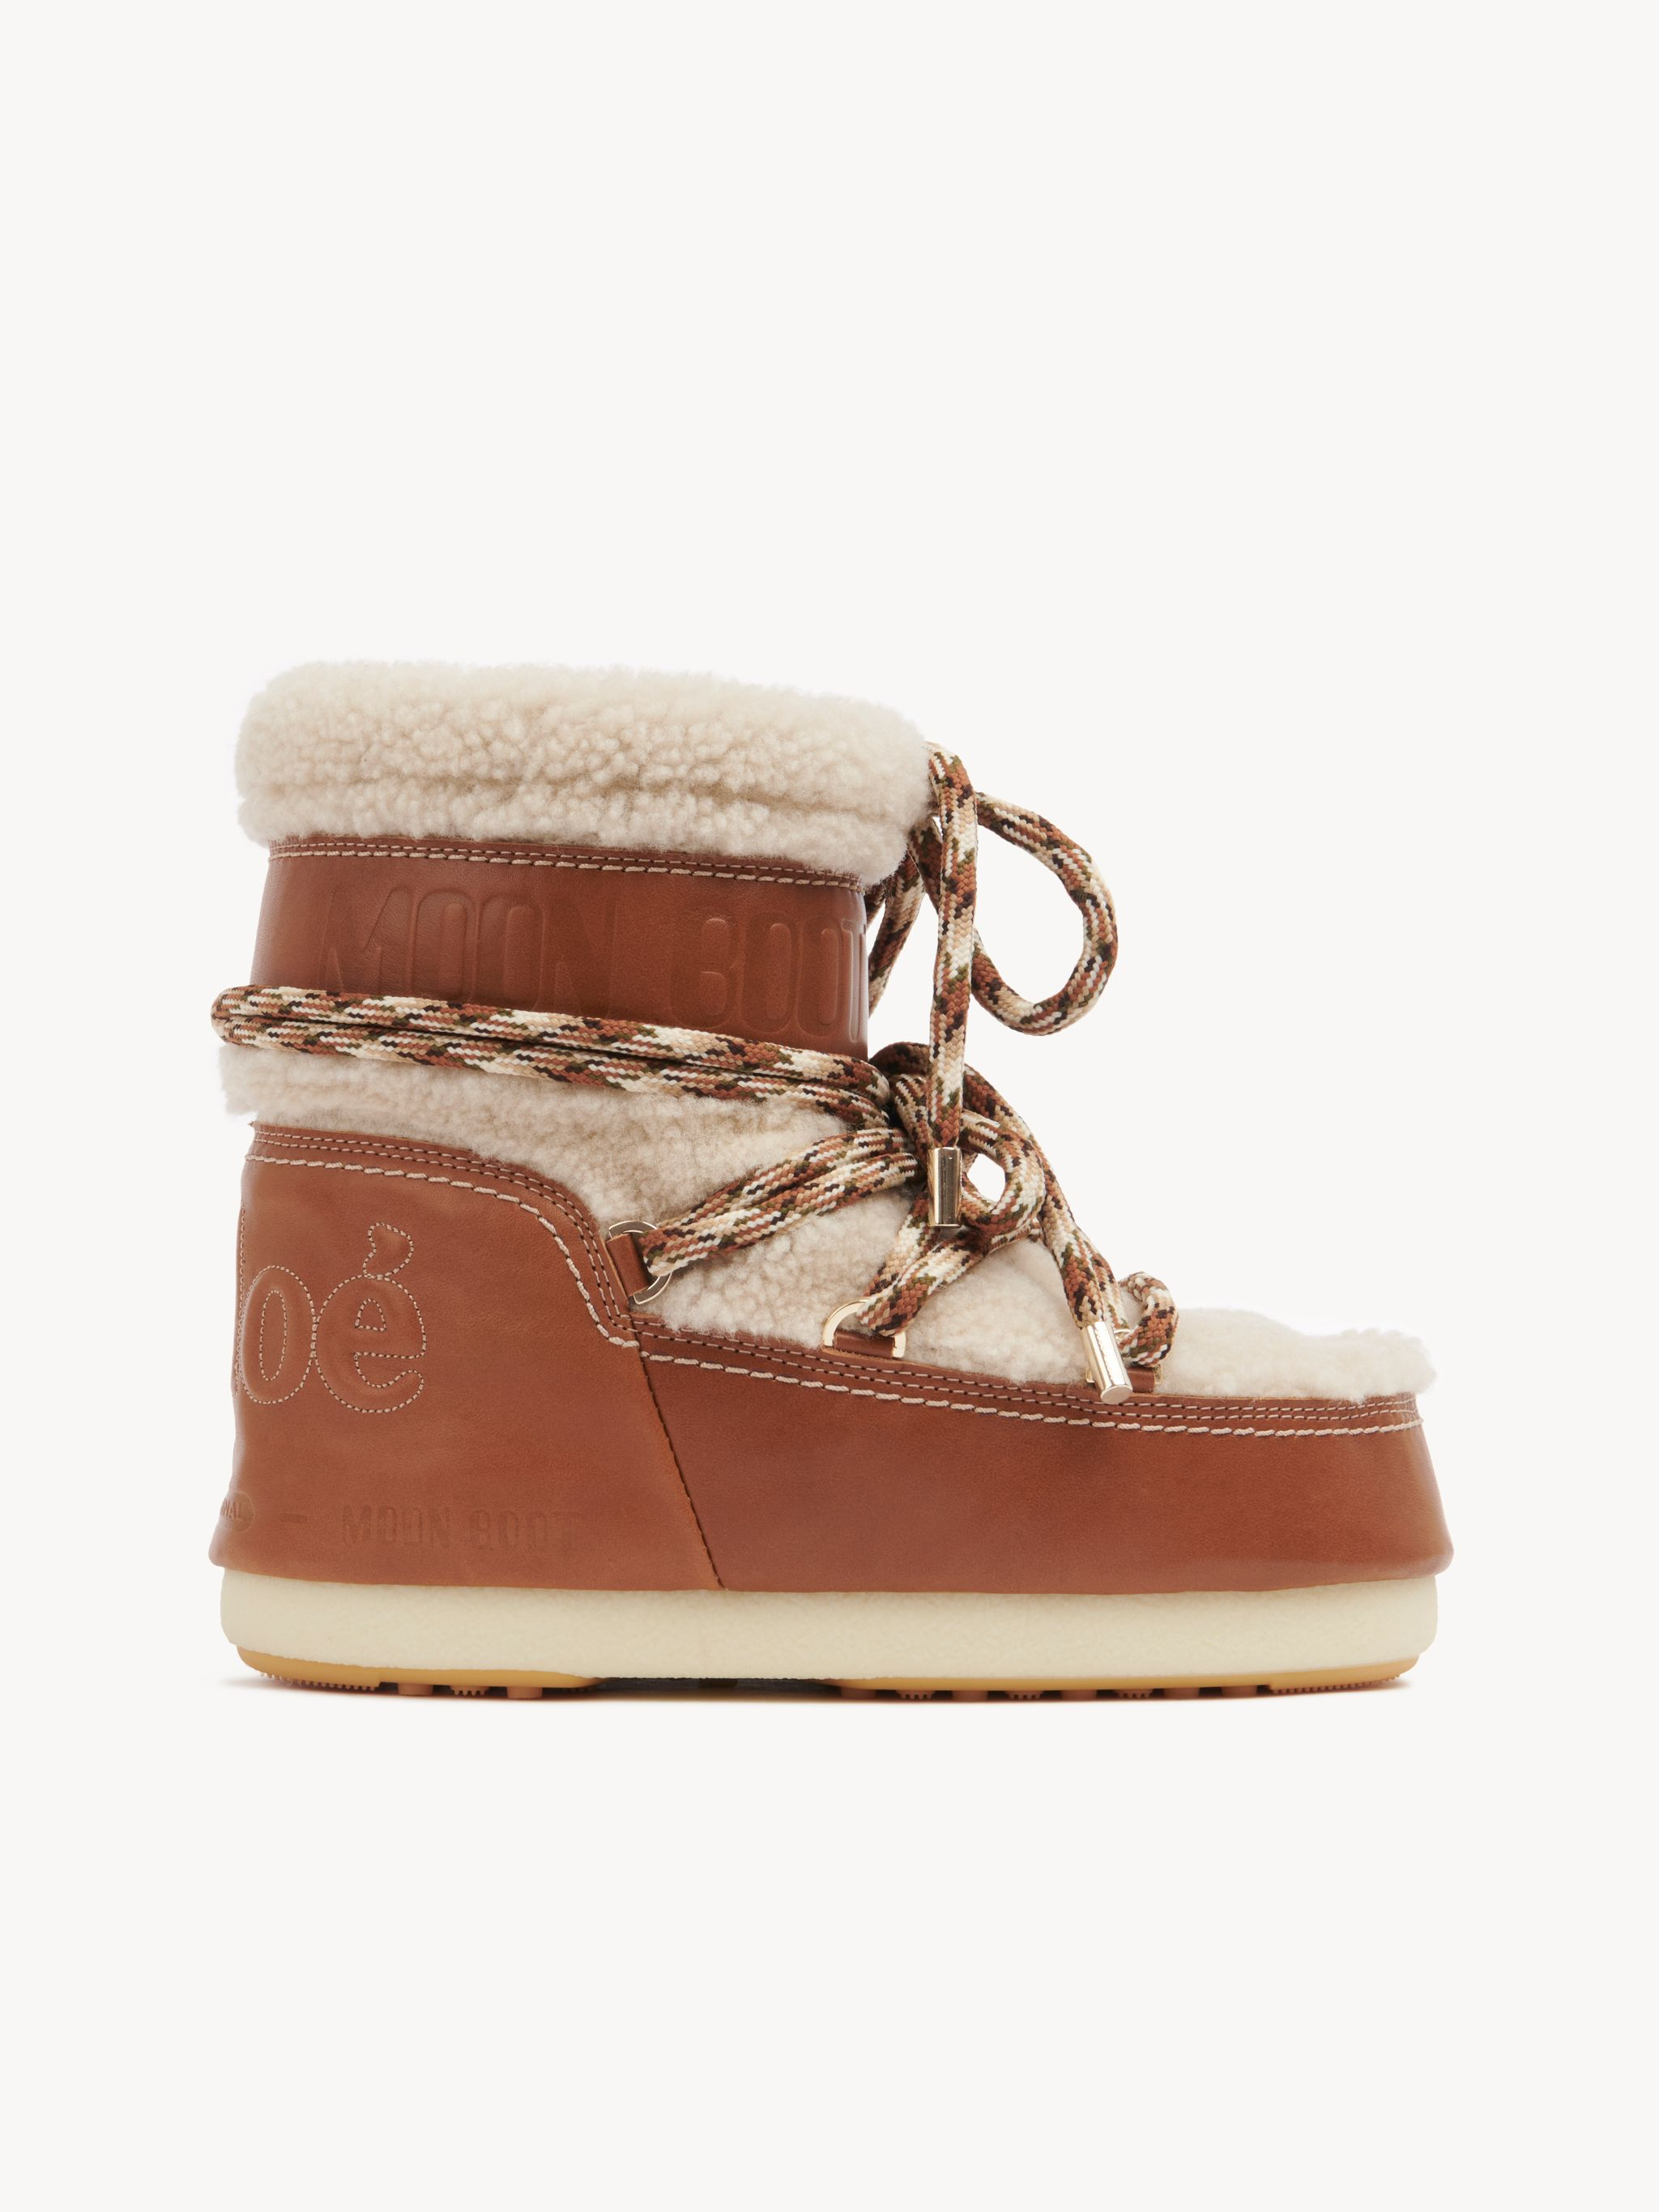 STIVALE CHLOÉ PANNA IN SHEARLING